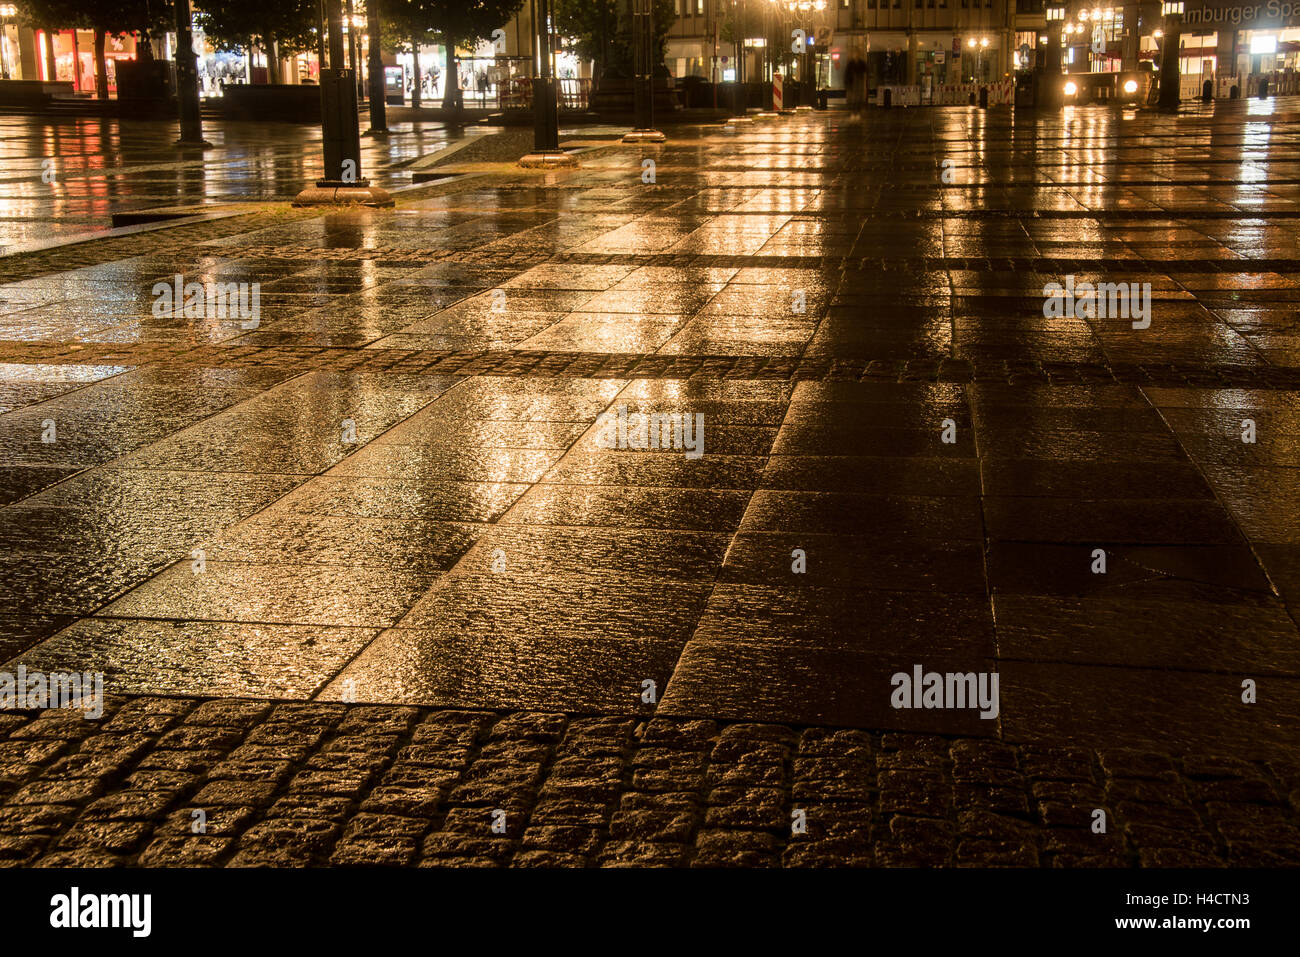 big square in the city with bright reflection light at a rainy night - Stock Image